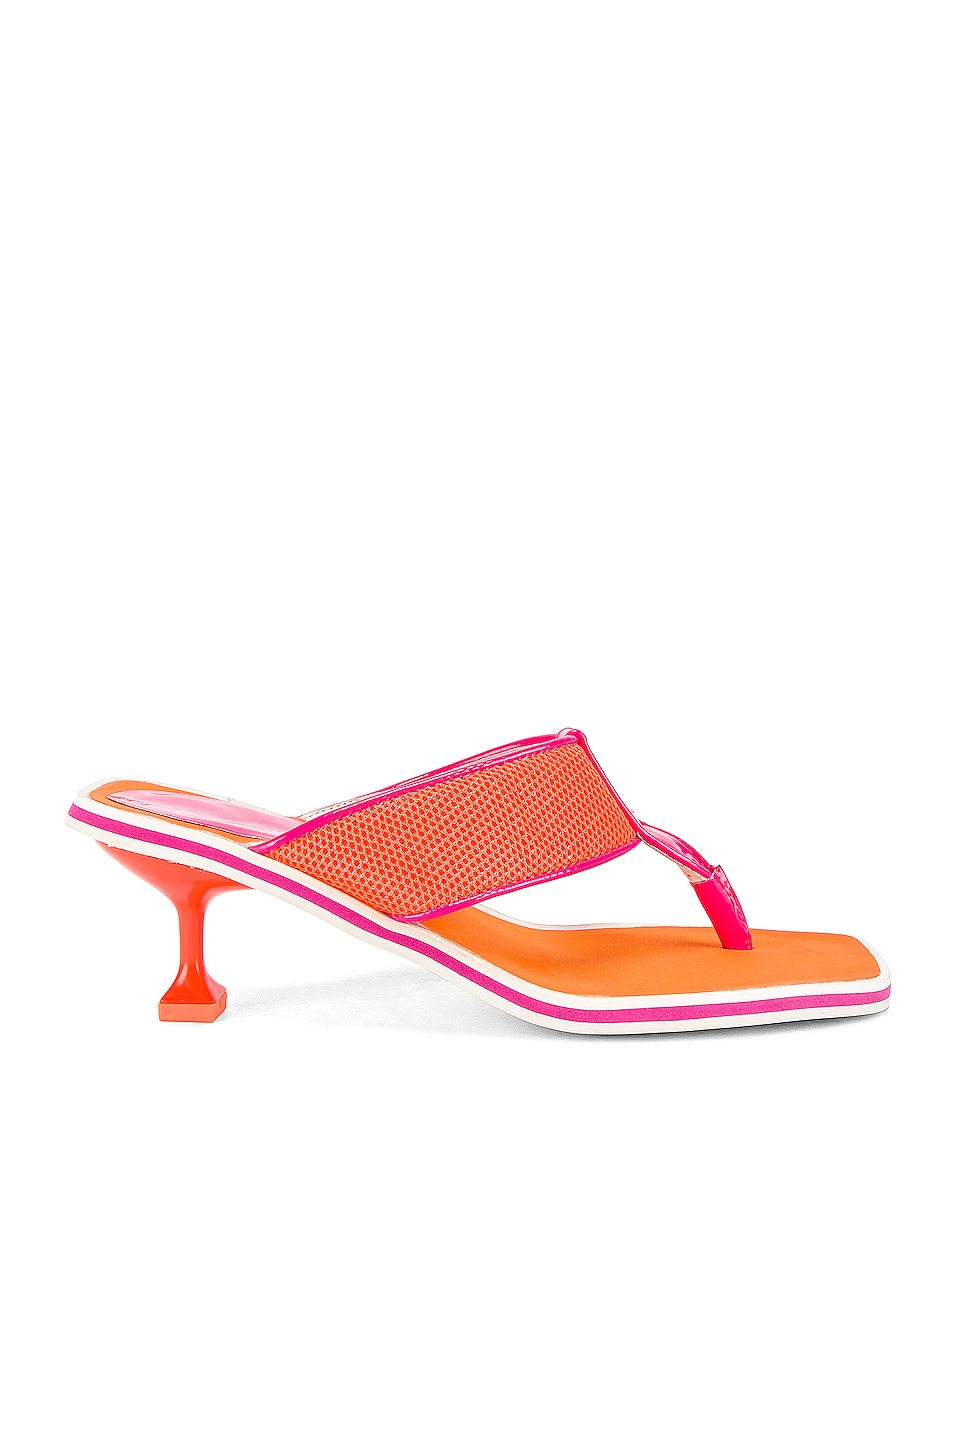 Jeffrey Campbell Goalie Sandal in Fuchsia & Orange